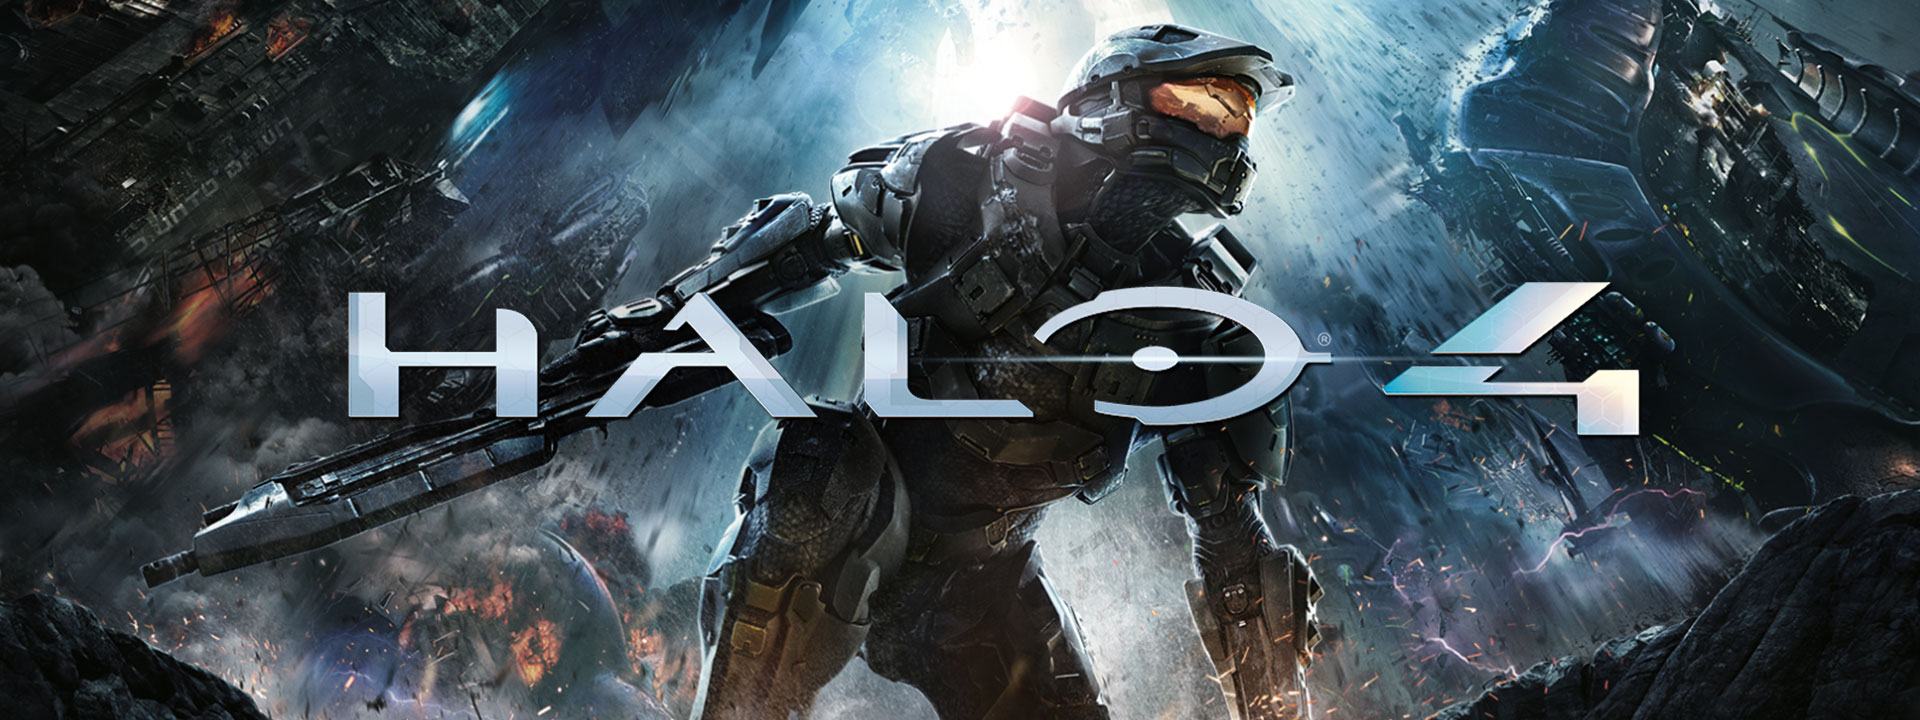 Halo 4, Master Chief crouches with a gun in hand under a crumbling city